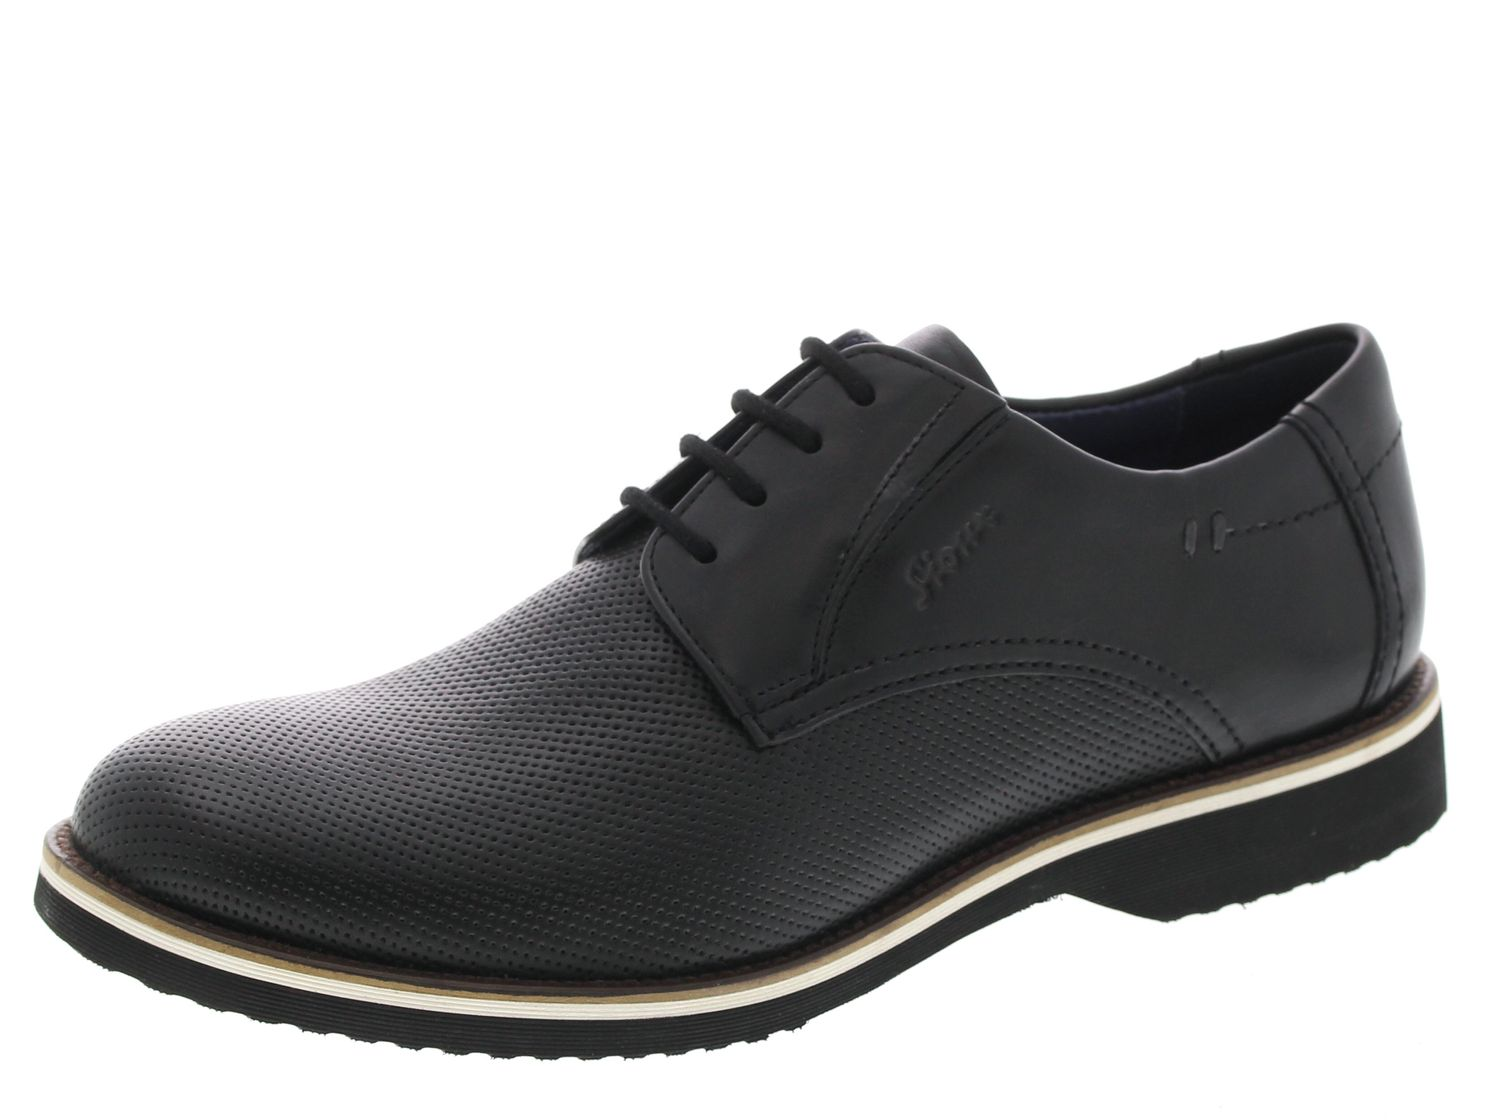 new arrival b6623 7f386 SIOUX Germany Herren Business Schuhe Dilip-701-XL Extraweit ...